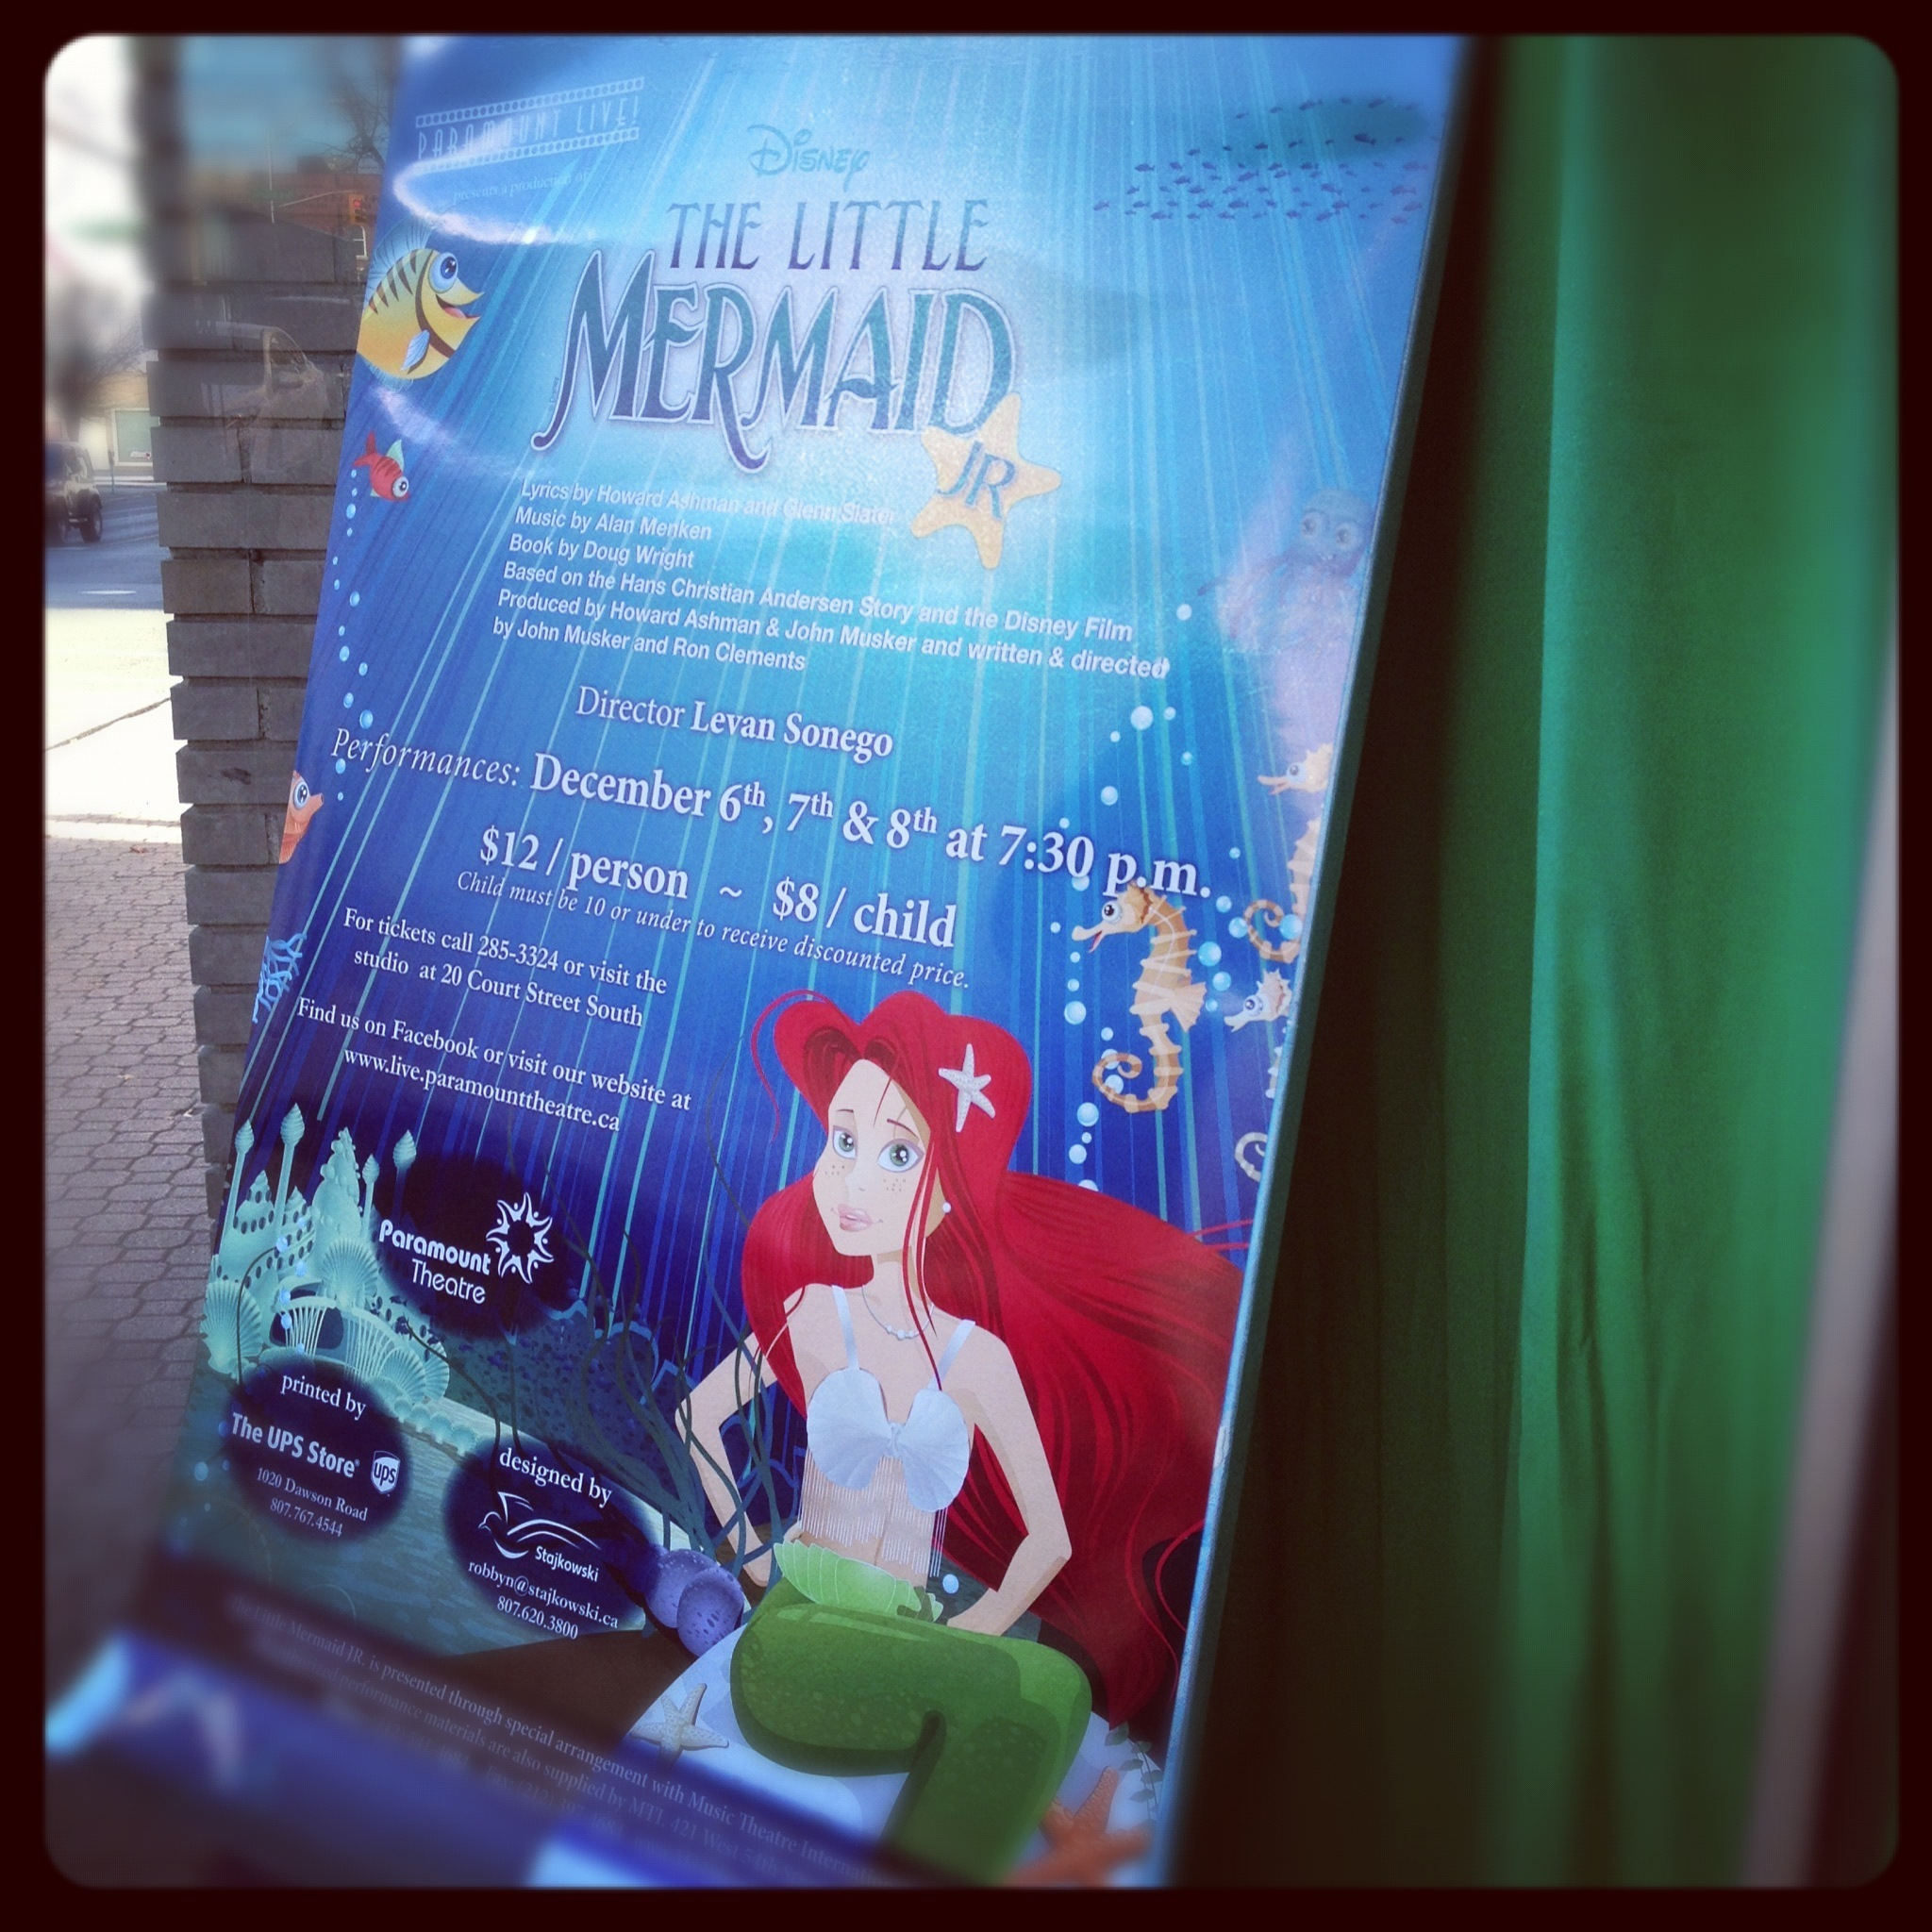 Paramount Live Presents: The Little Mermaid